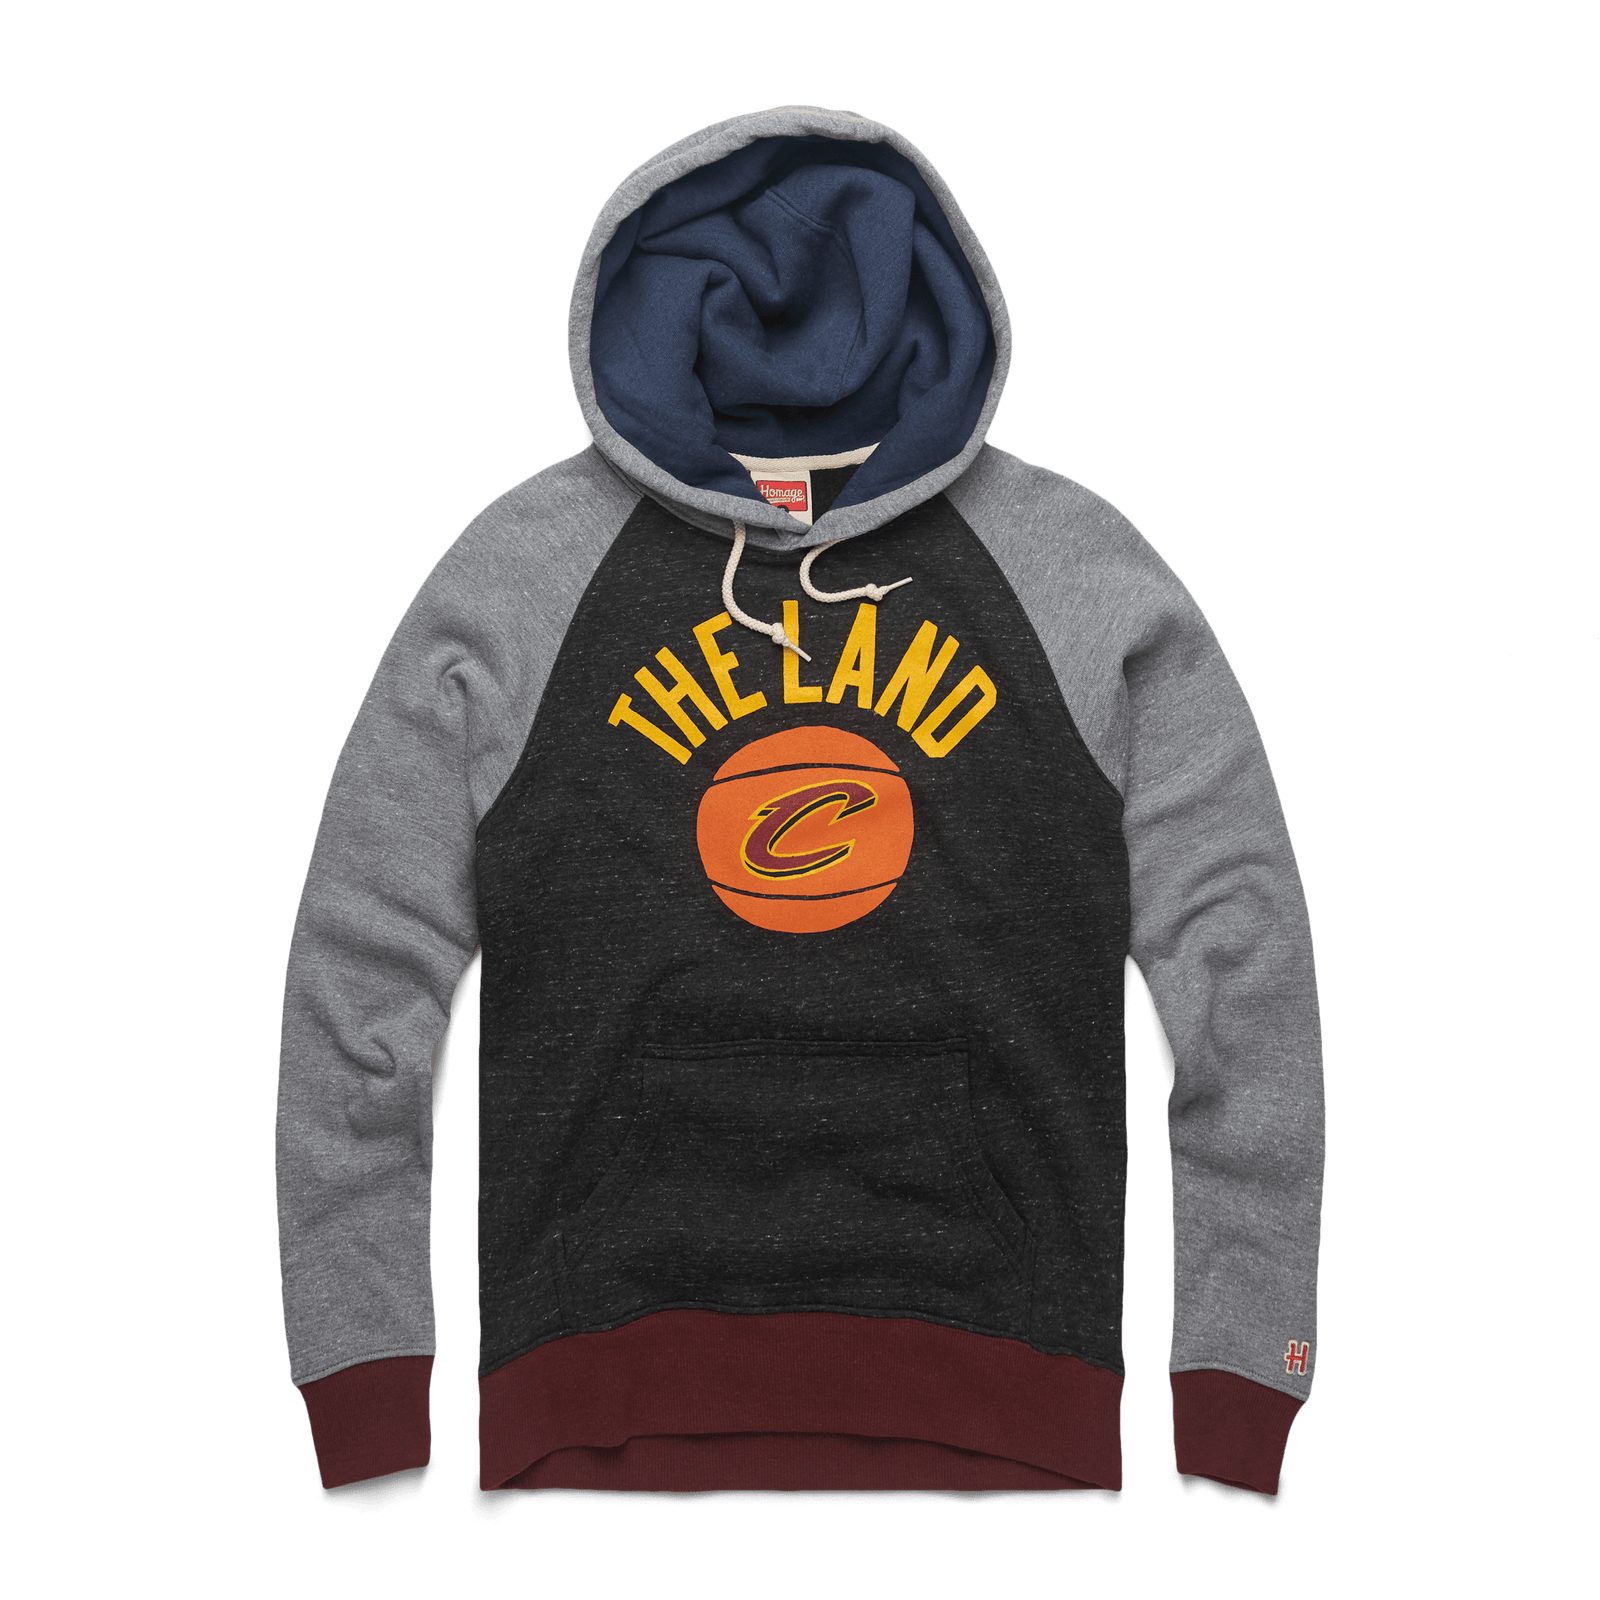 The Land Cavs Hoodie